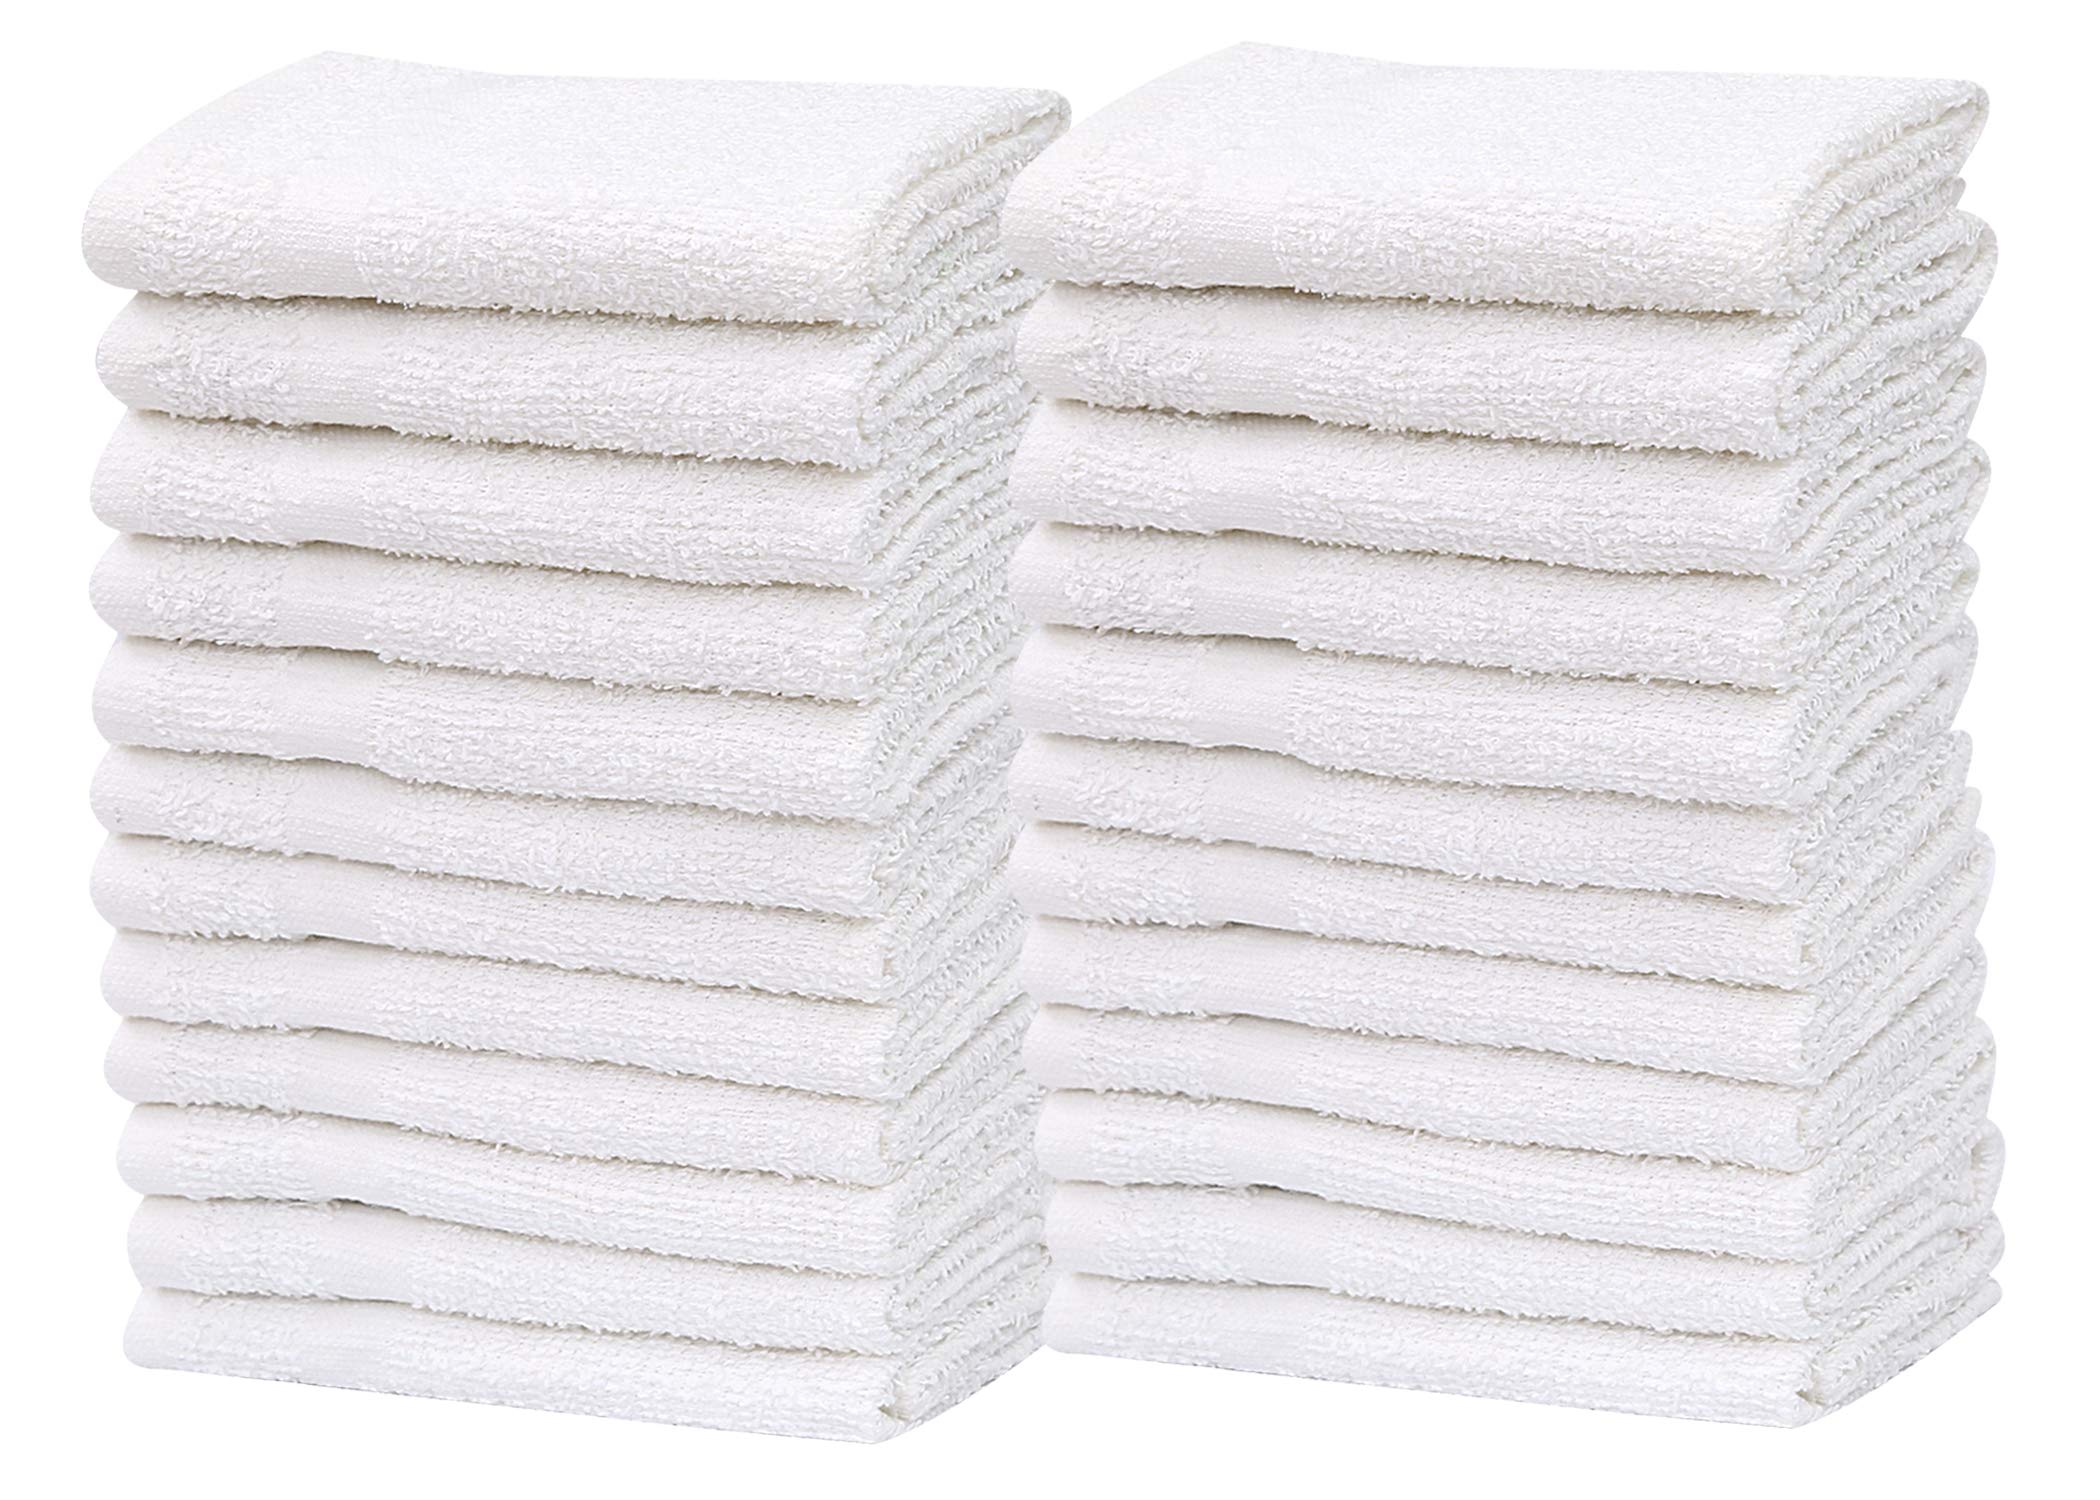 """GOLD TEXTILES Pack of 24 Washcloth Kitchen Towels,100% Natural Cotton, (12""""x12"""") Hand Towels, Commercial Grade Washcloth, Machine Washable Cleaning Rags, Wash Cloths for Bathroom bu (24, White)"""